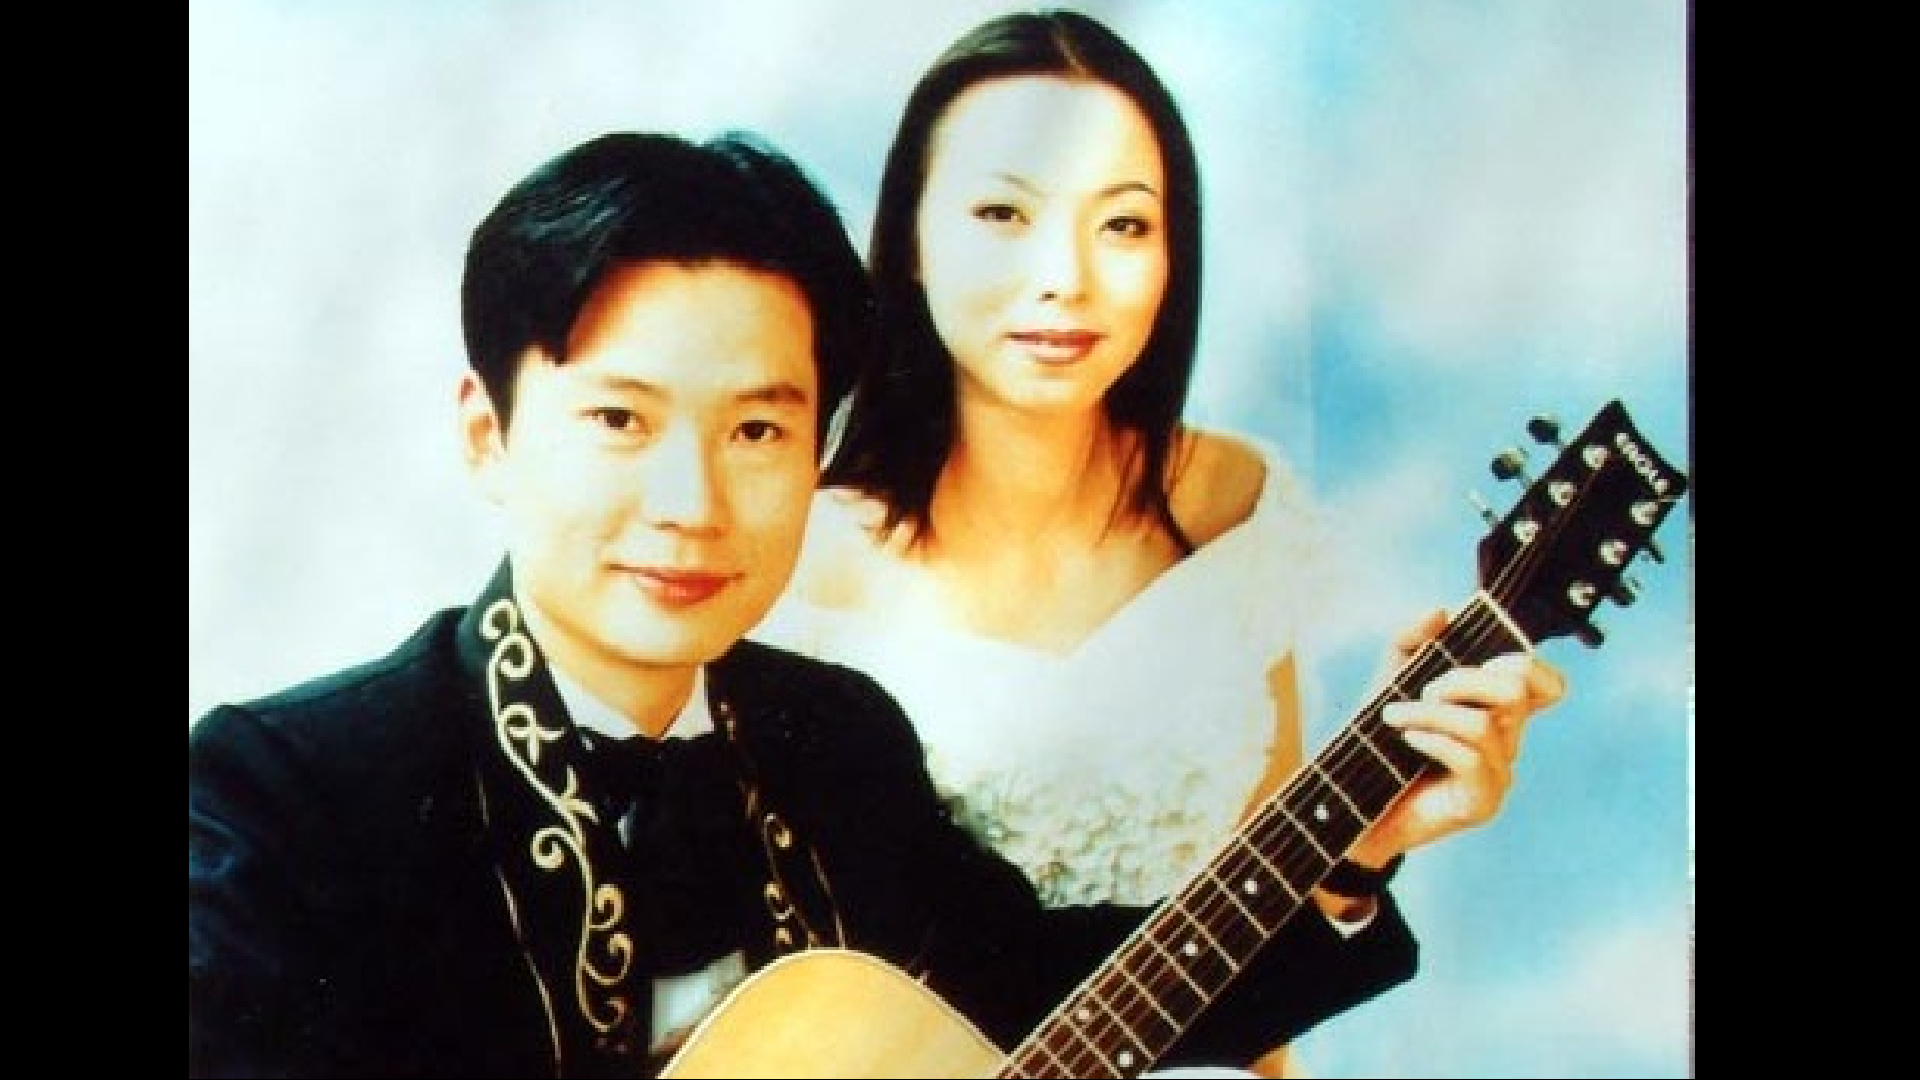 Musician Regains Health and Hope, Only to Be Tortured to Death for His Faith